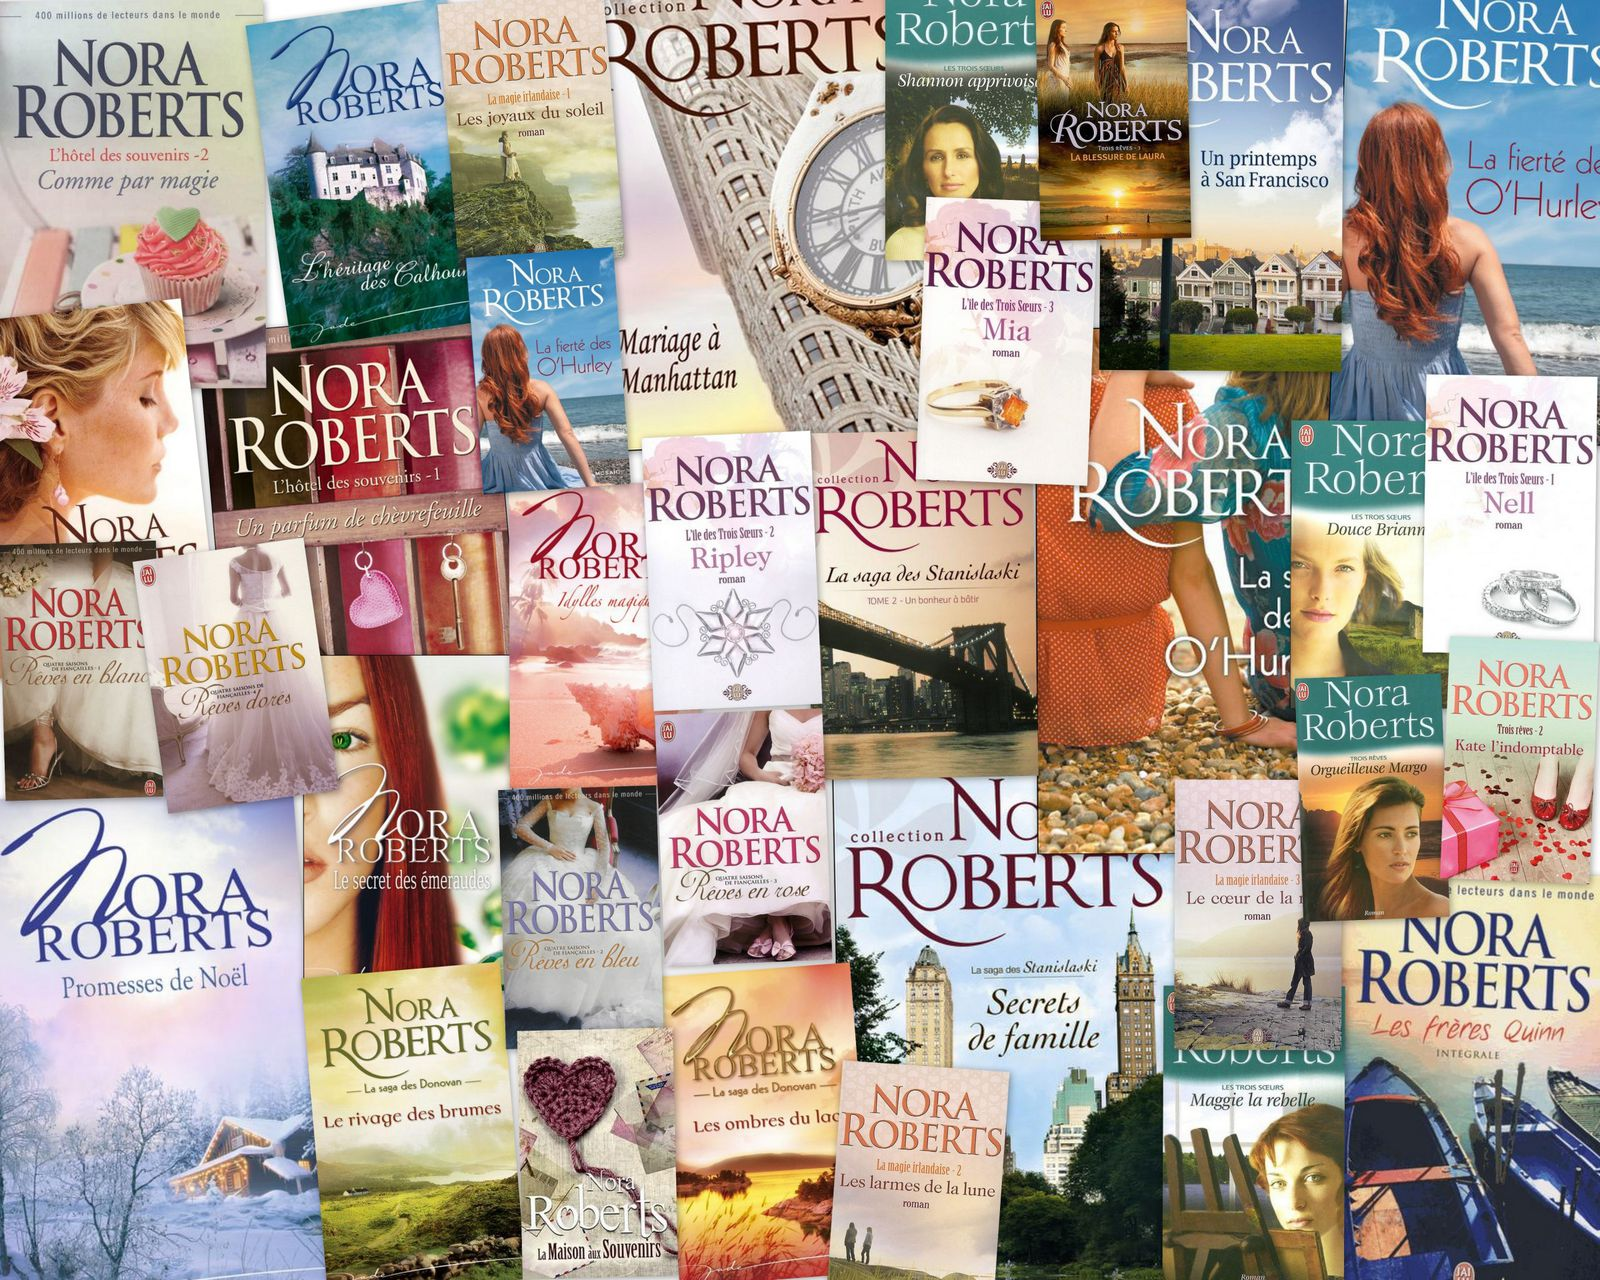 Collection nora roberts my literary world - Coup de coeur nora roberts ...